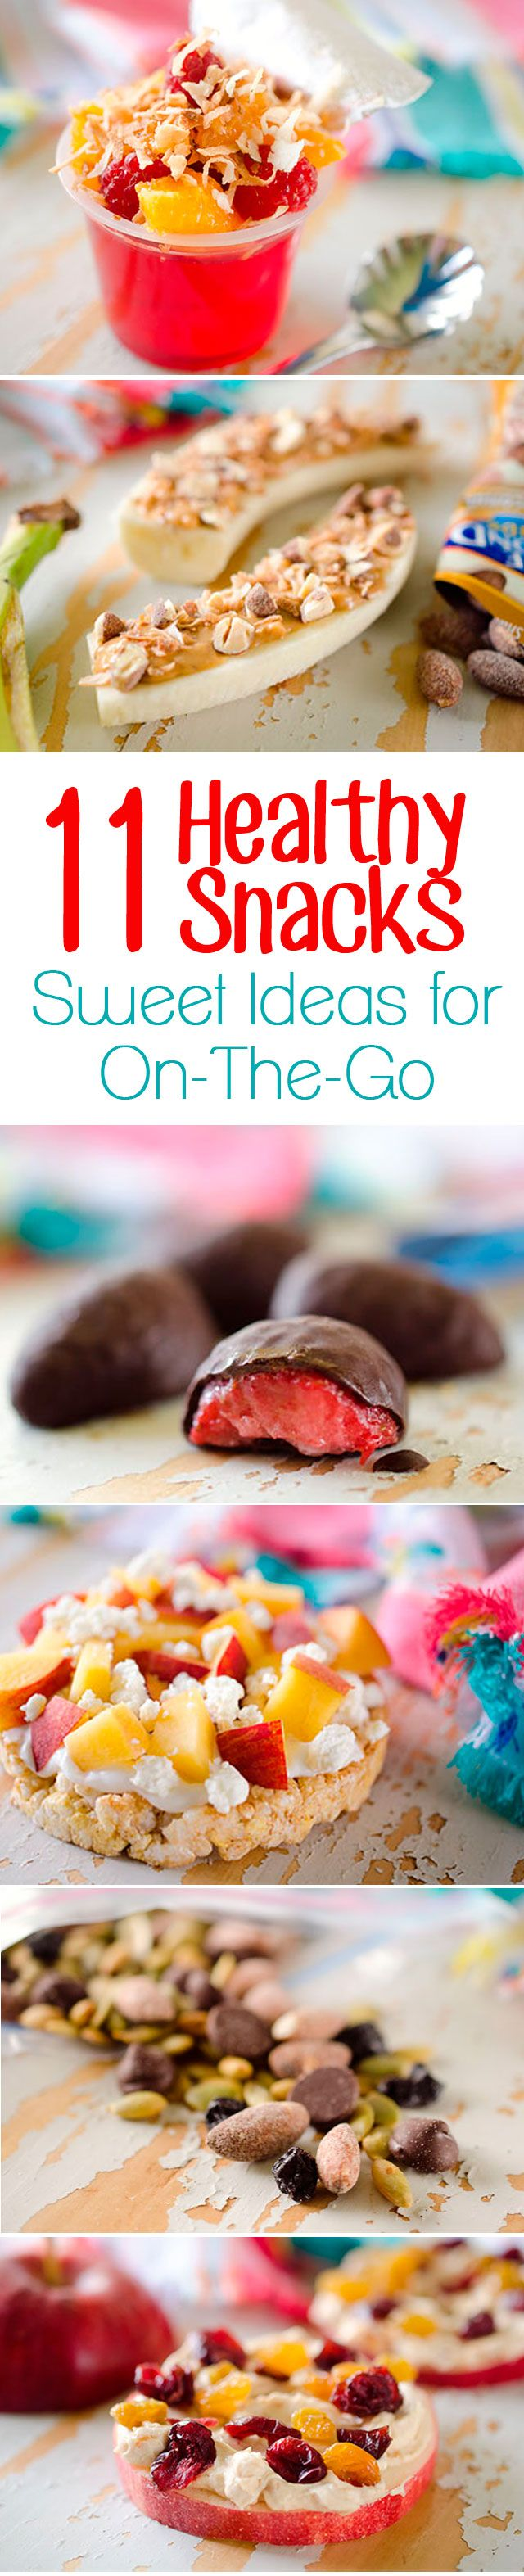 This list of 11 Healthy Snacks - Sweet Ideas for On-The-Go is amazing! These unique treats are quick snack ideas that are loaded with protein